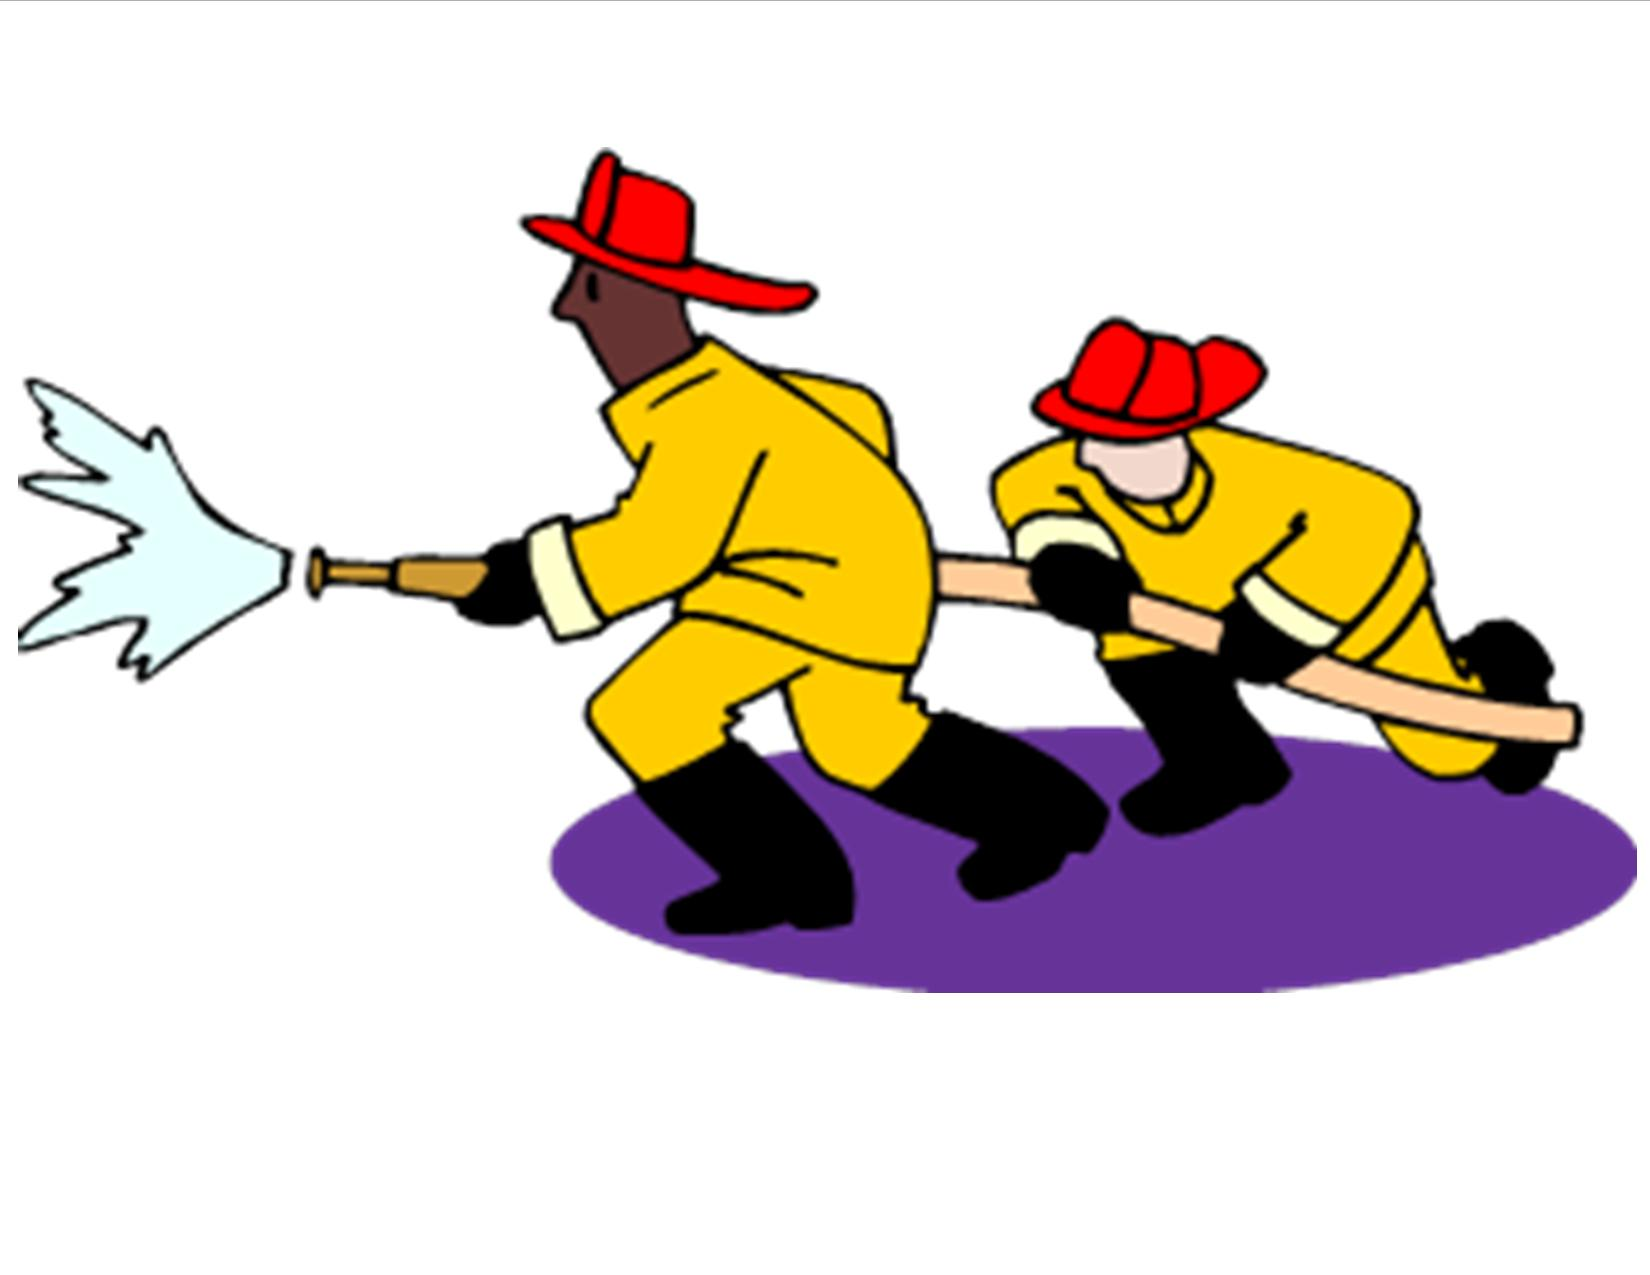 1650x1275 Fireman Firefighter Clip Art On Firefighters And Firemen 5